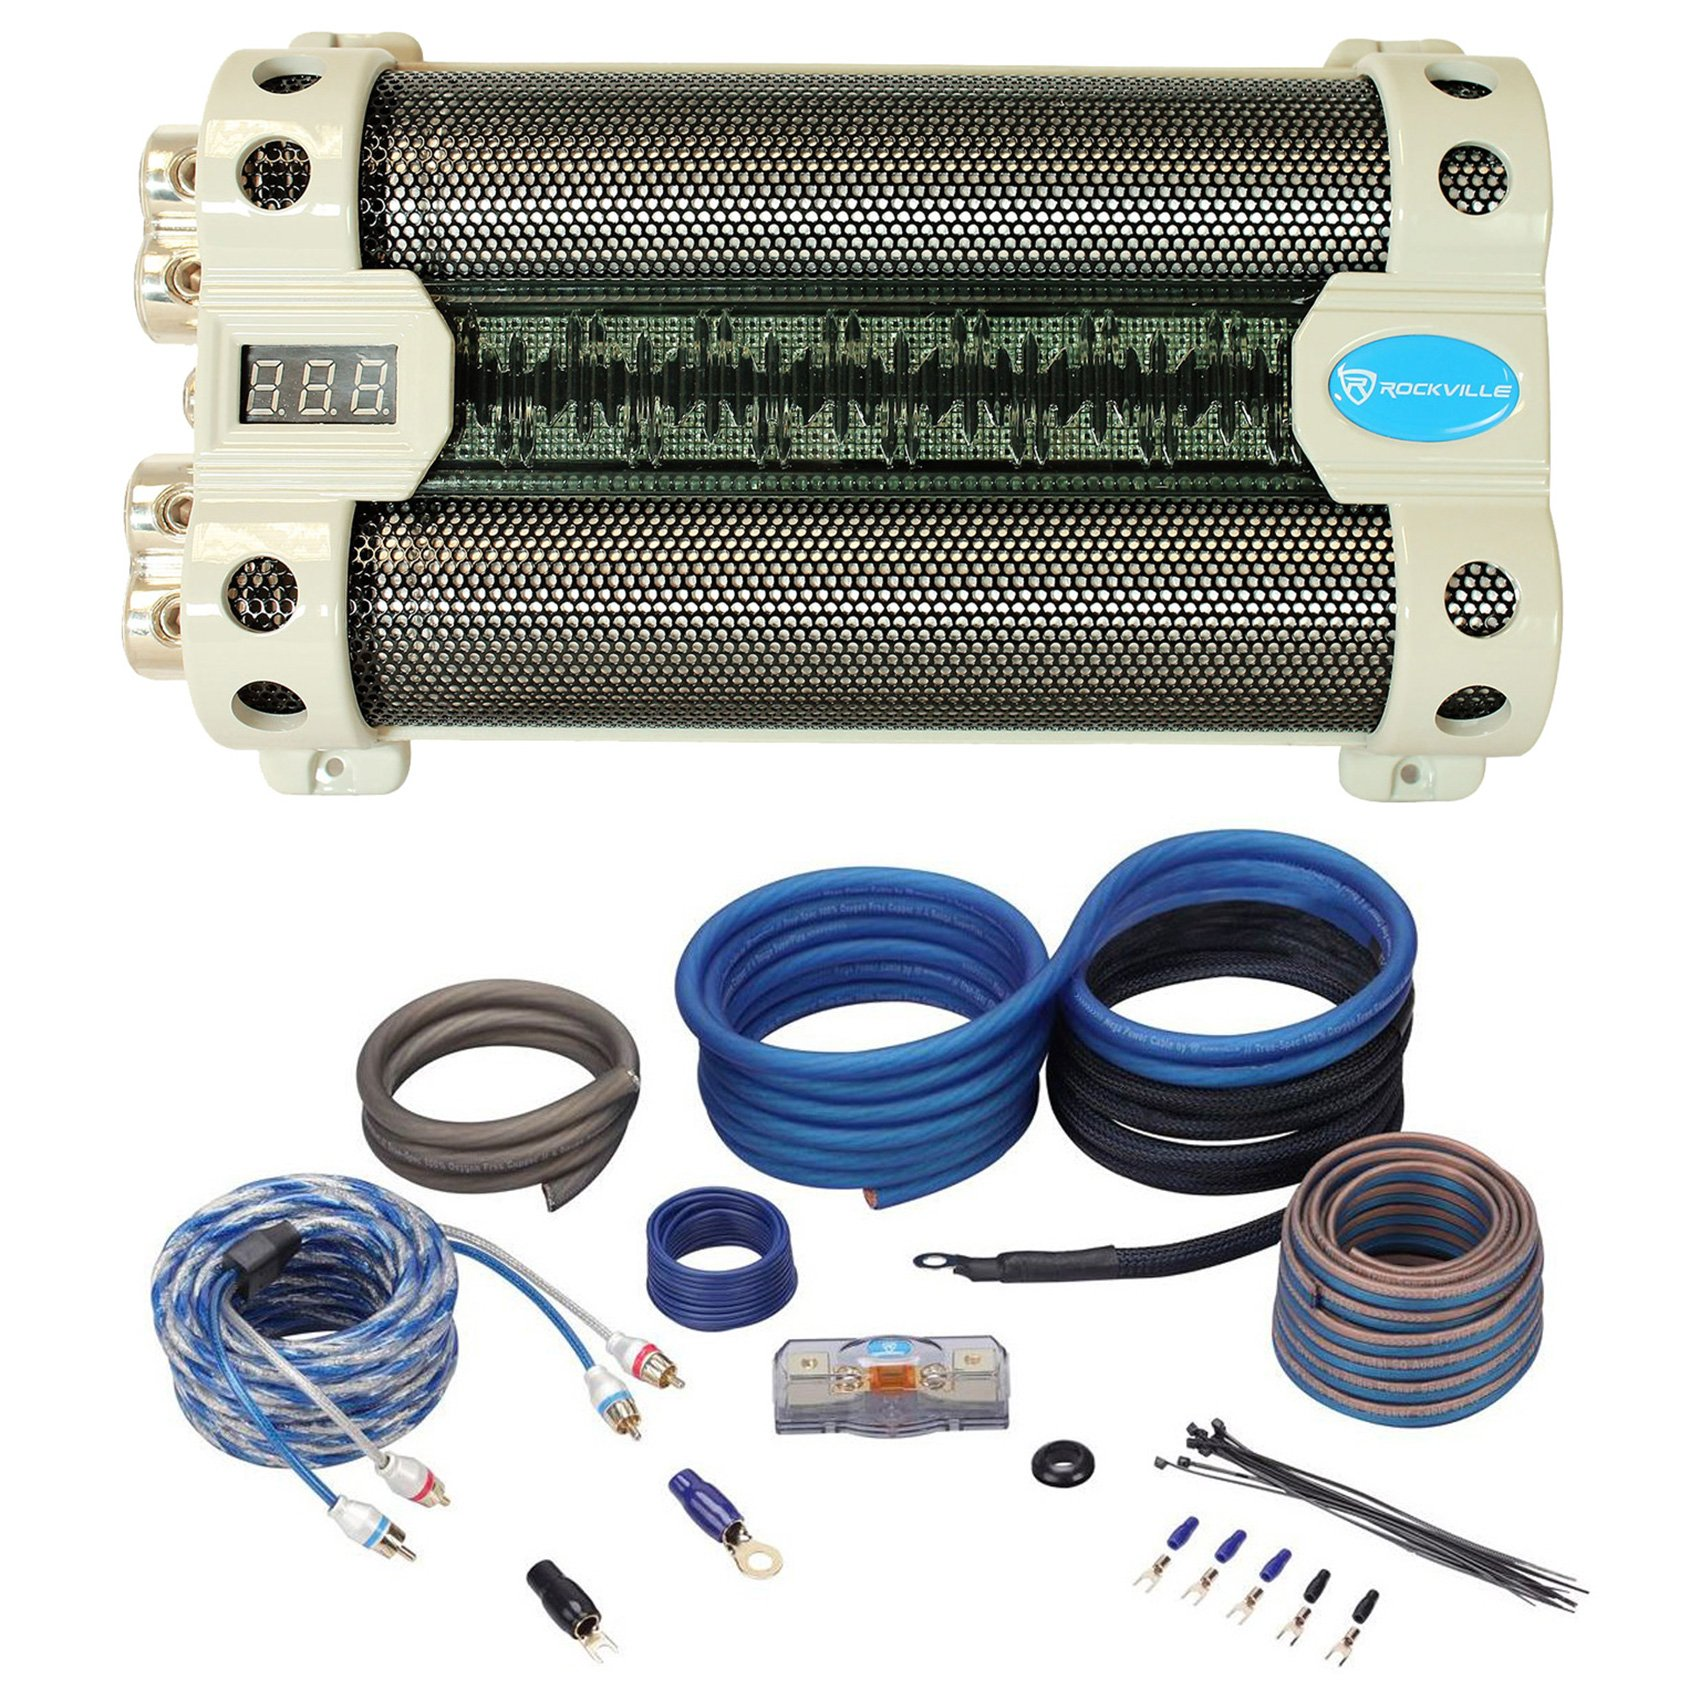 Package: Rockville RFC30F 30 Farad Capacitor With Blue Backlit Voltage Display and Built In Distribution Block + Rockville RWK4CU 100% Copper Full-Spec 4 AWG Complete Car Amplifier Installation Kit